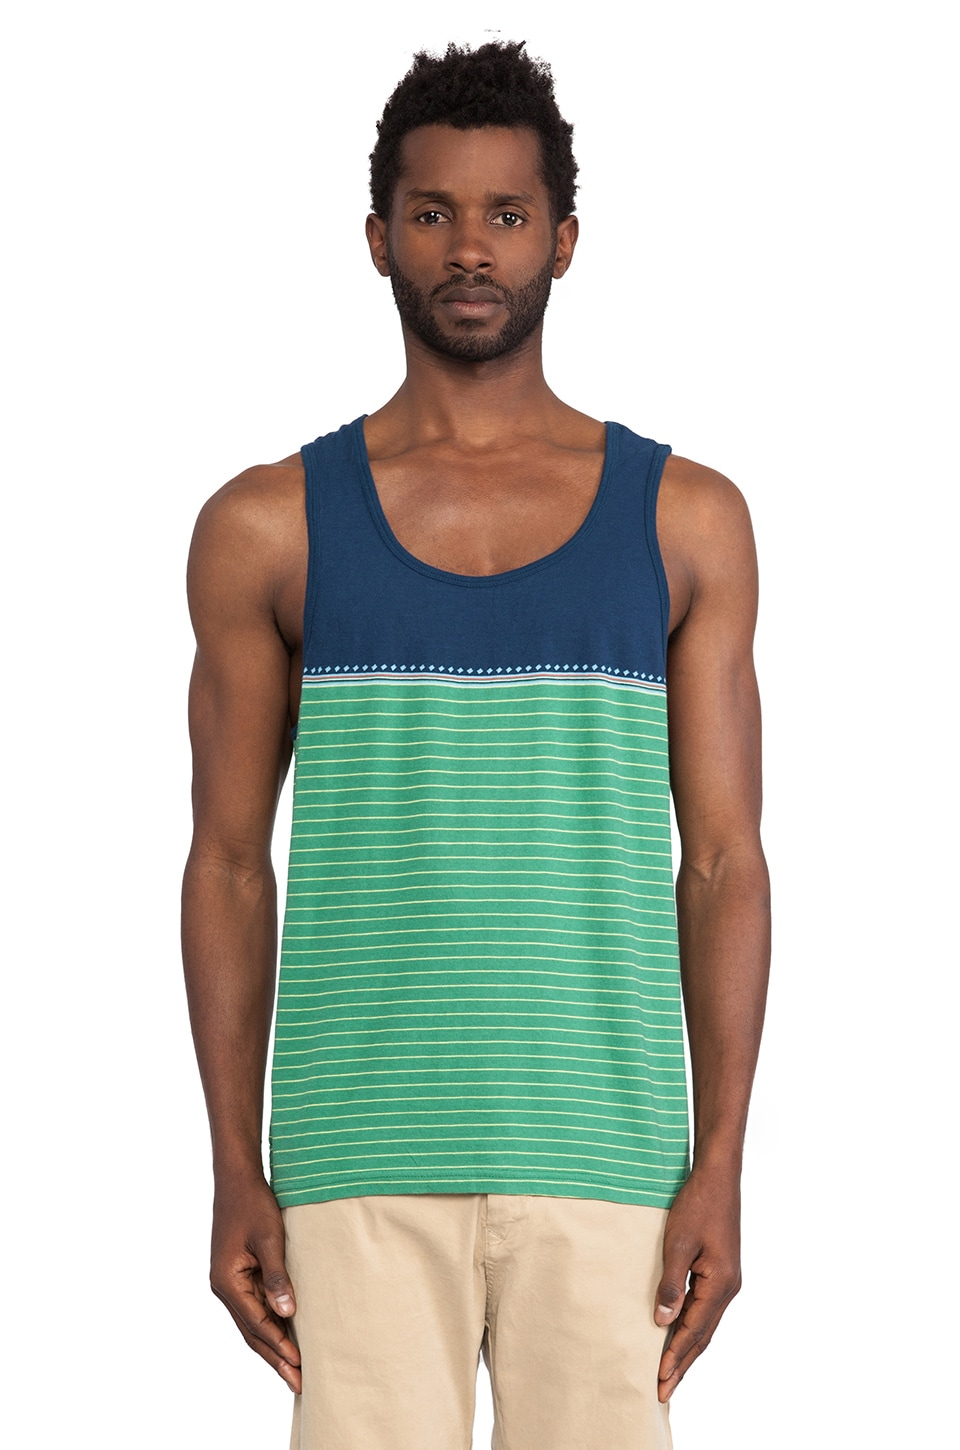 Burkman Bros. Tank Top in Blue & Green